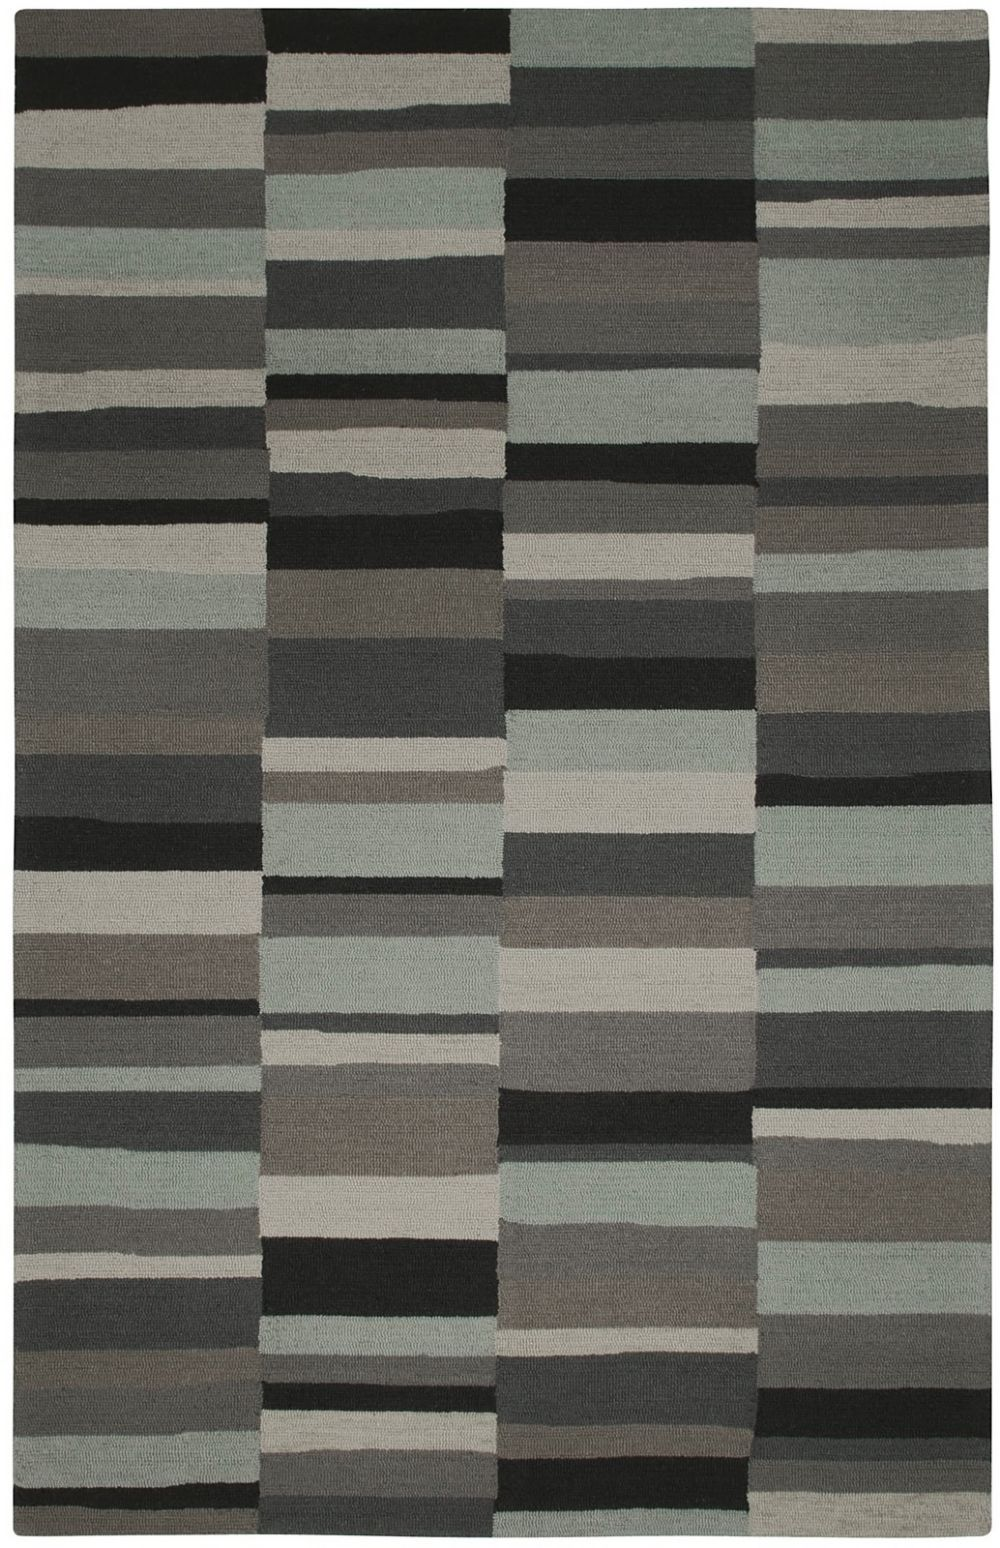 capel charcoal-stripe contemporary area rug collection